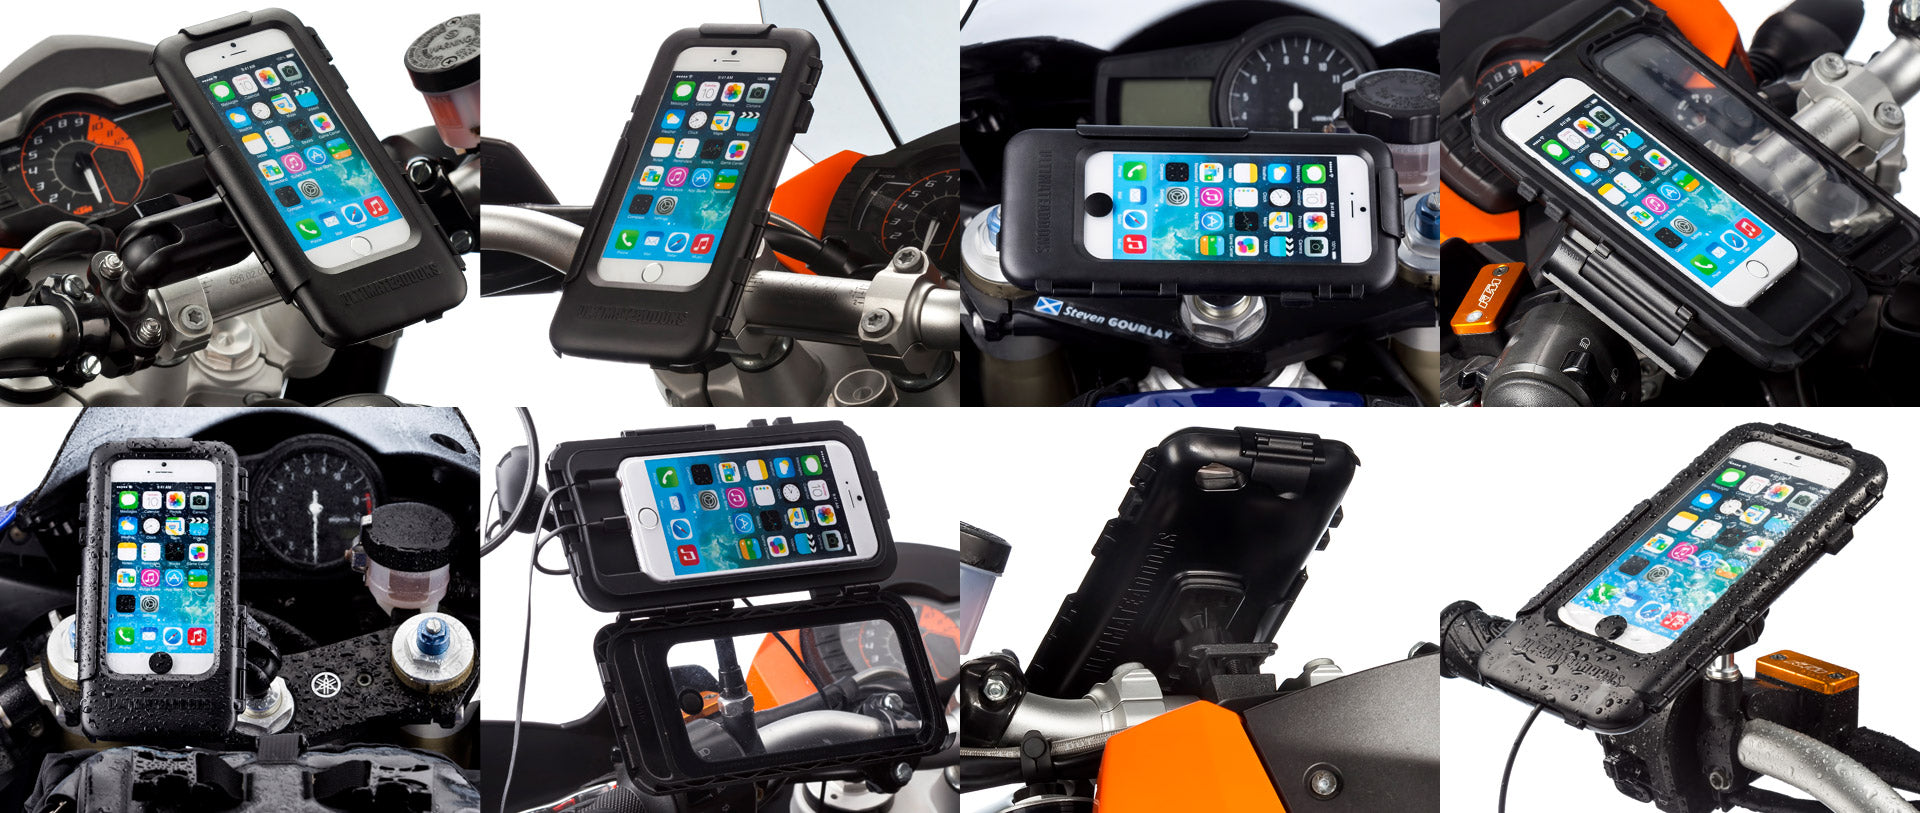 iPhone 6 waterproof tough mount case for motorcycles